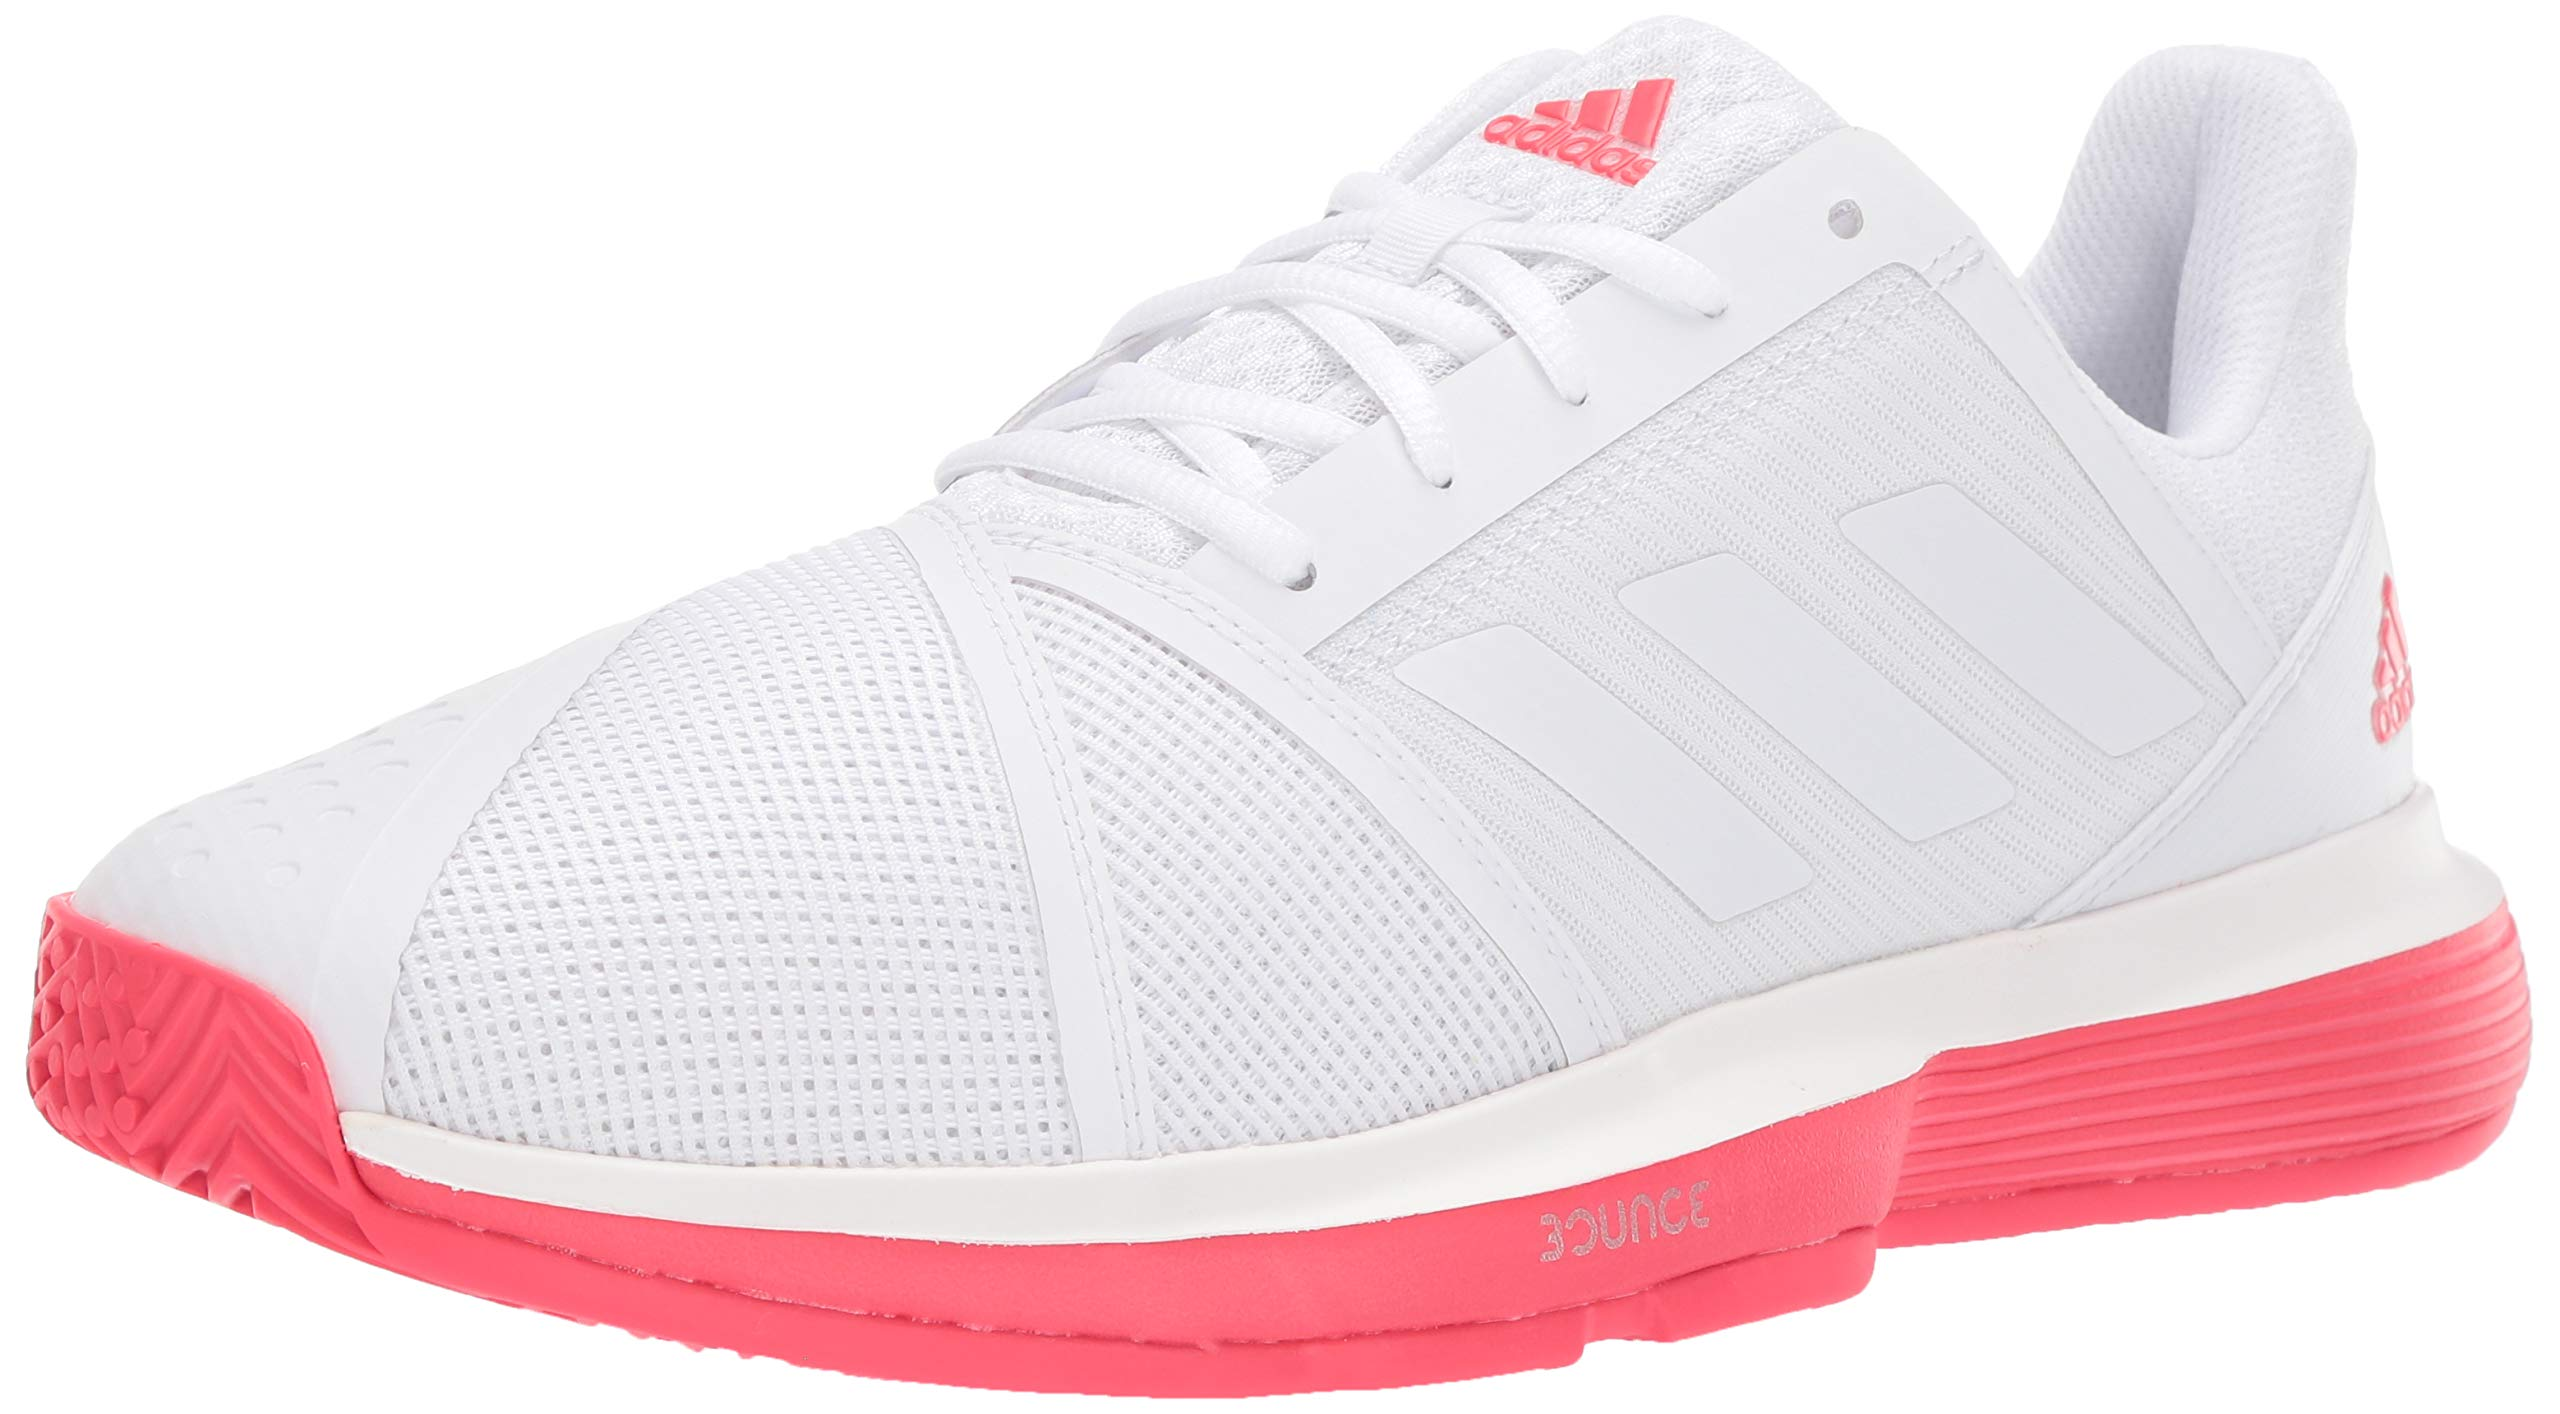 adidas Men's Courtjam Bounce, White/Shock red, 6.5 M US